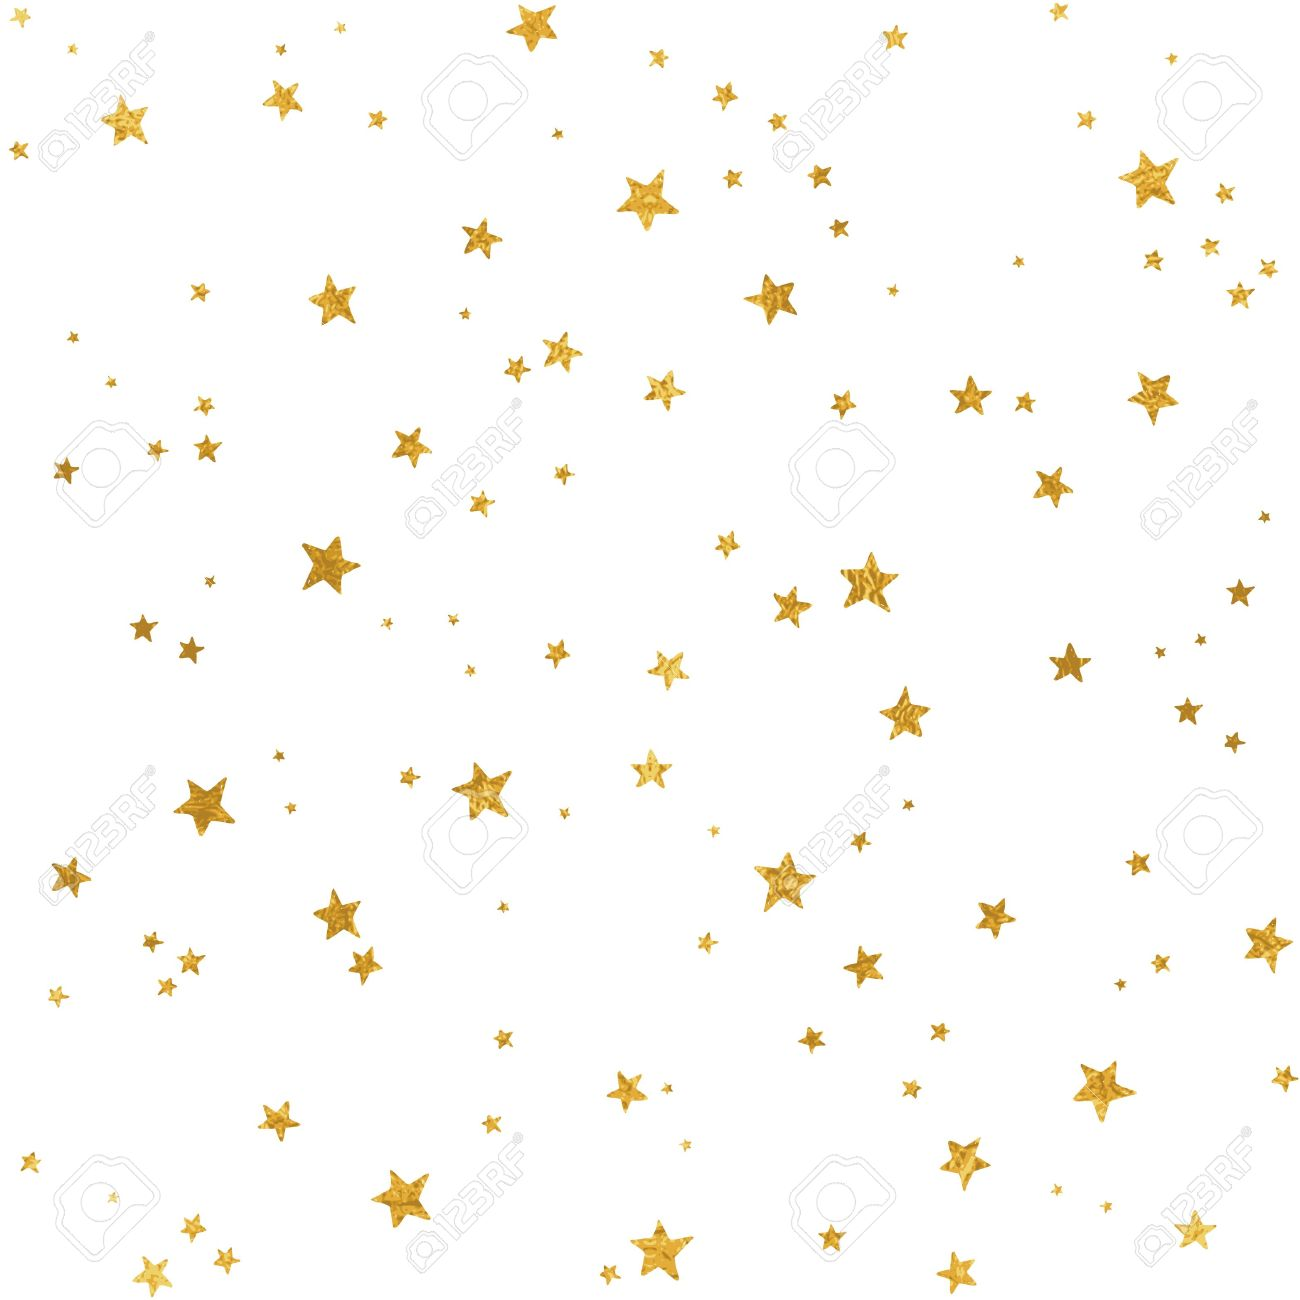 Seamless pattern with gold foil stars for Christmas (or other occasions) - 64562440